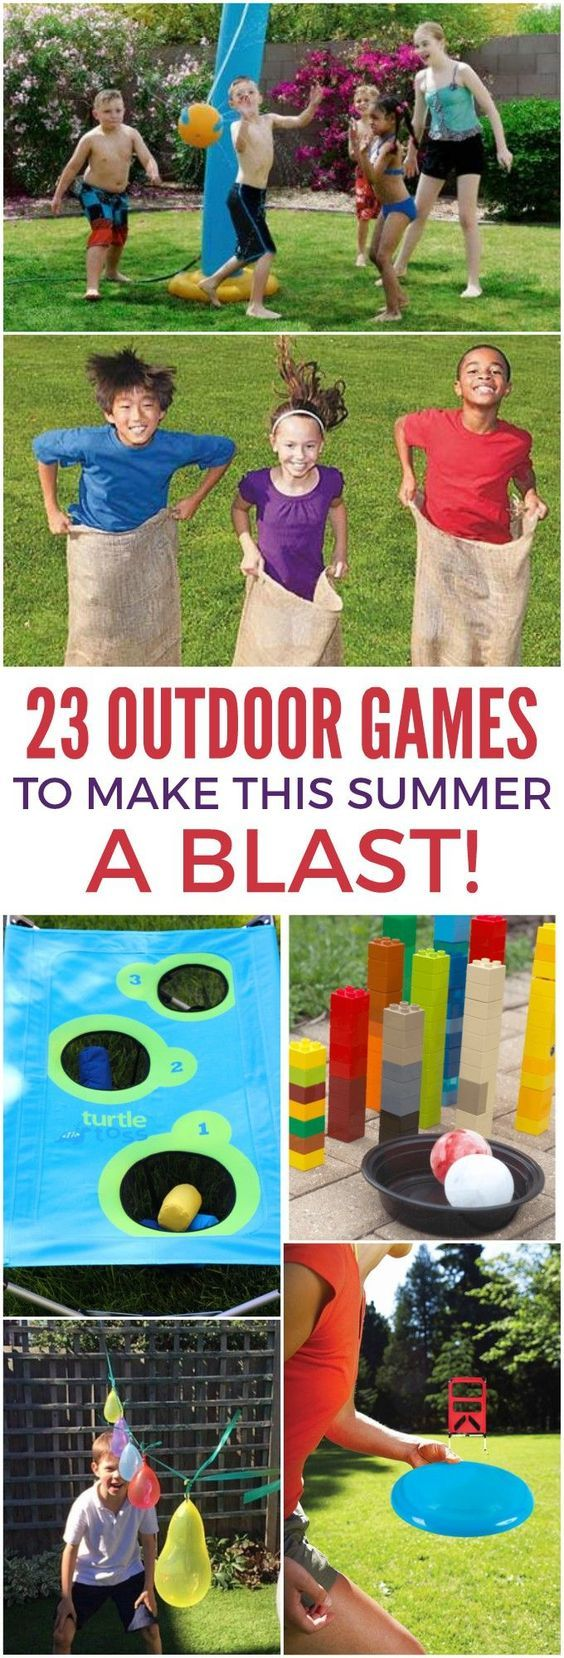 23 Outdoor Games to Make This Summer